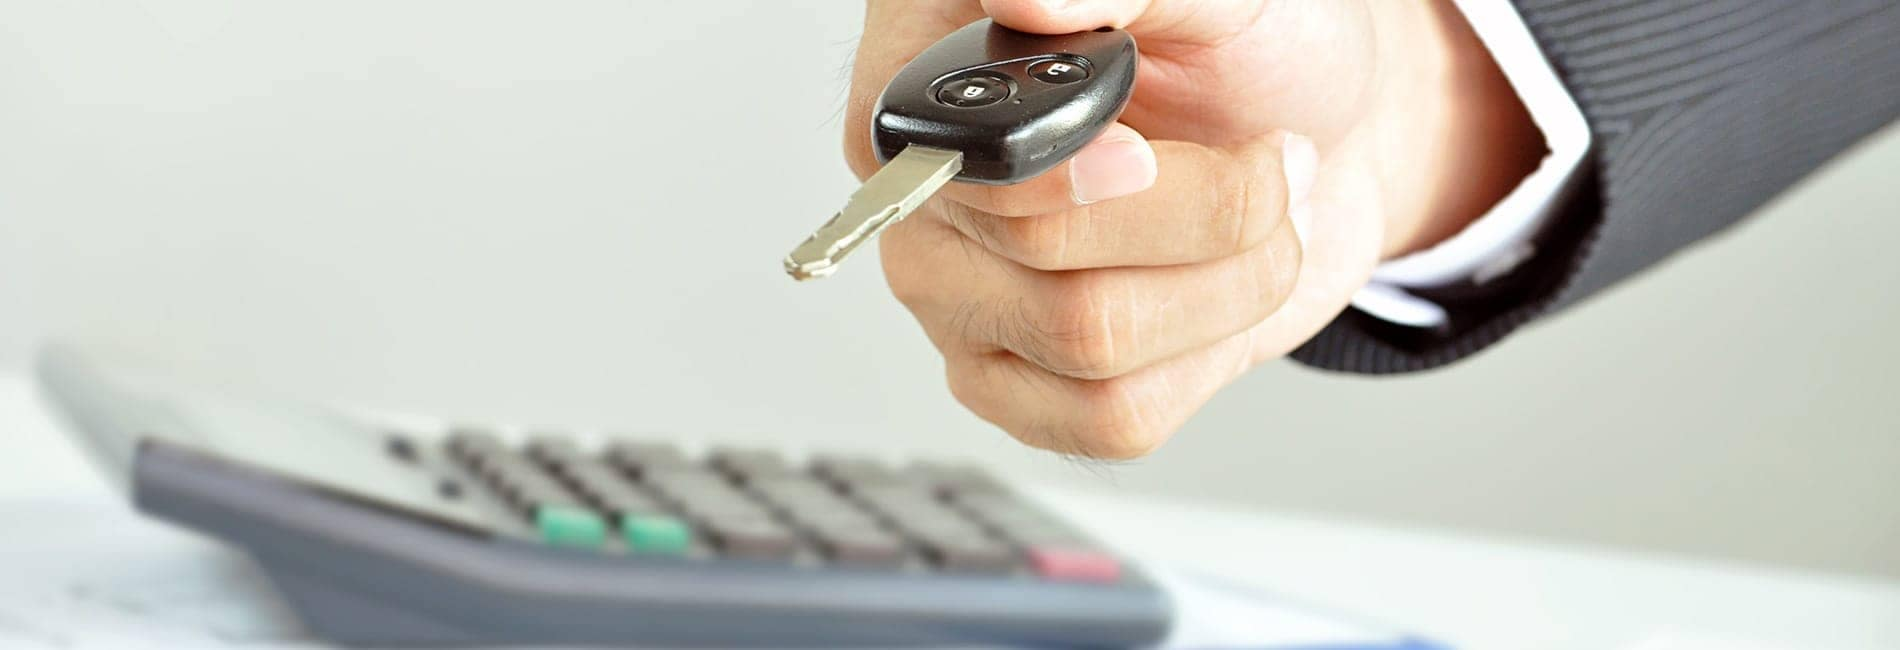 man holding key next to calculator